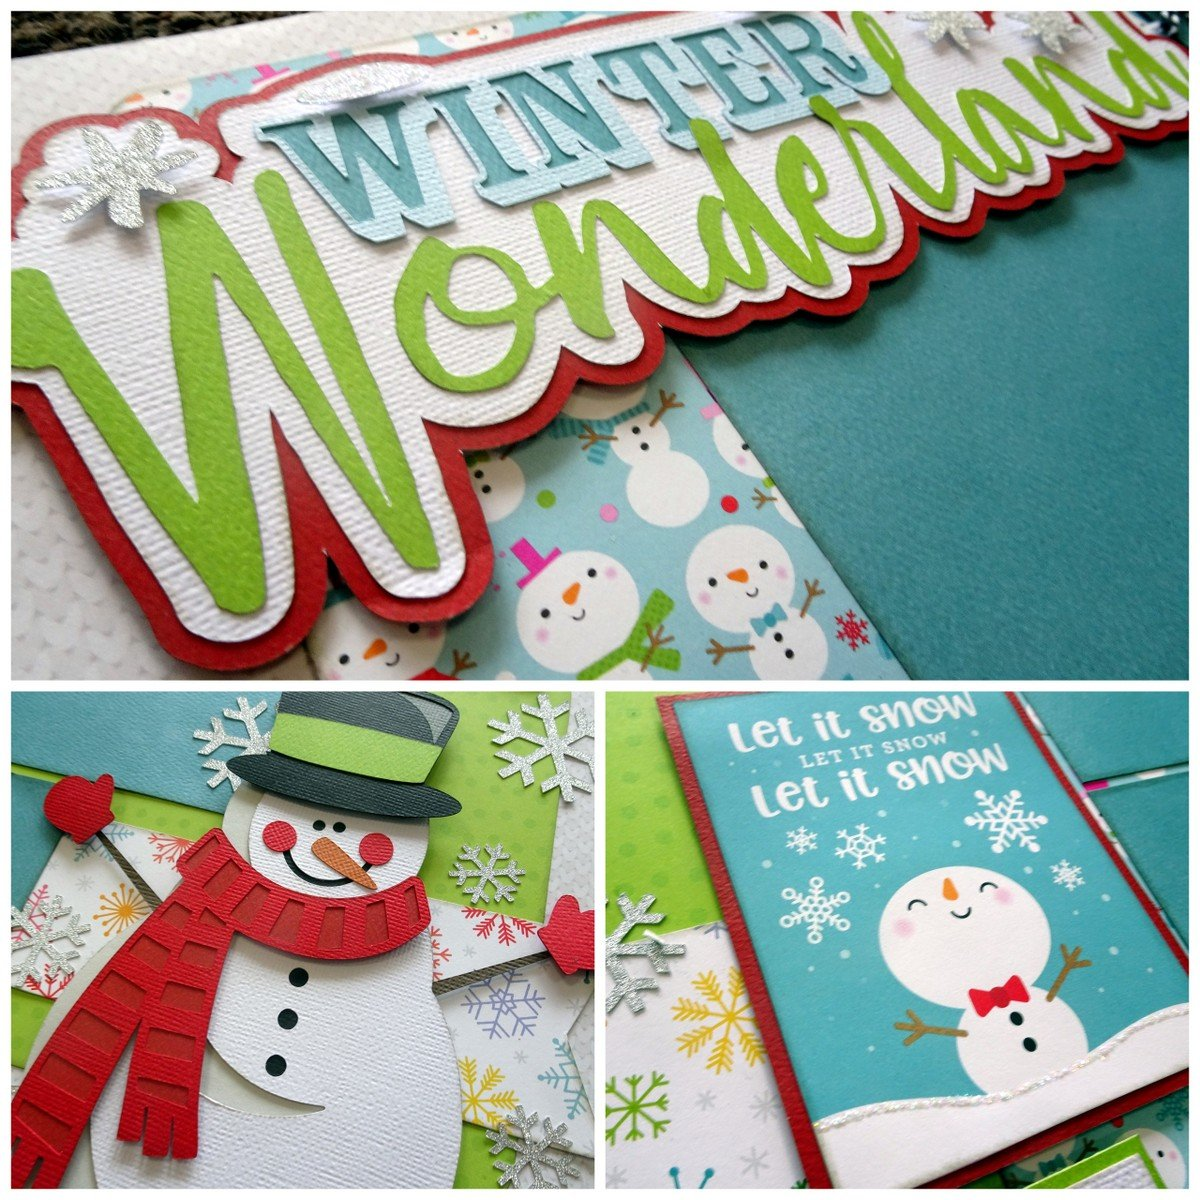 Winter Wonderland Kit 2019